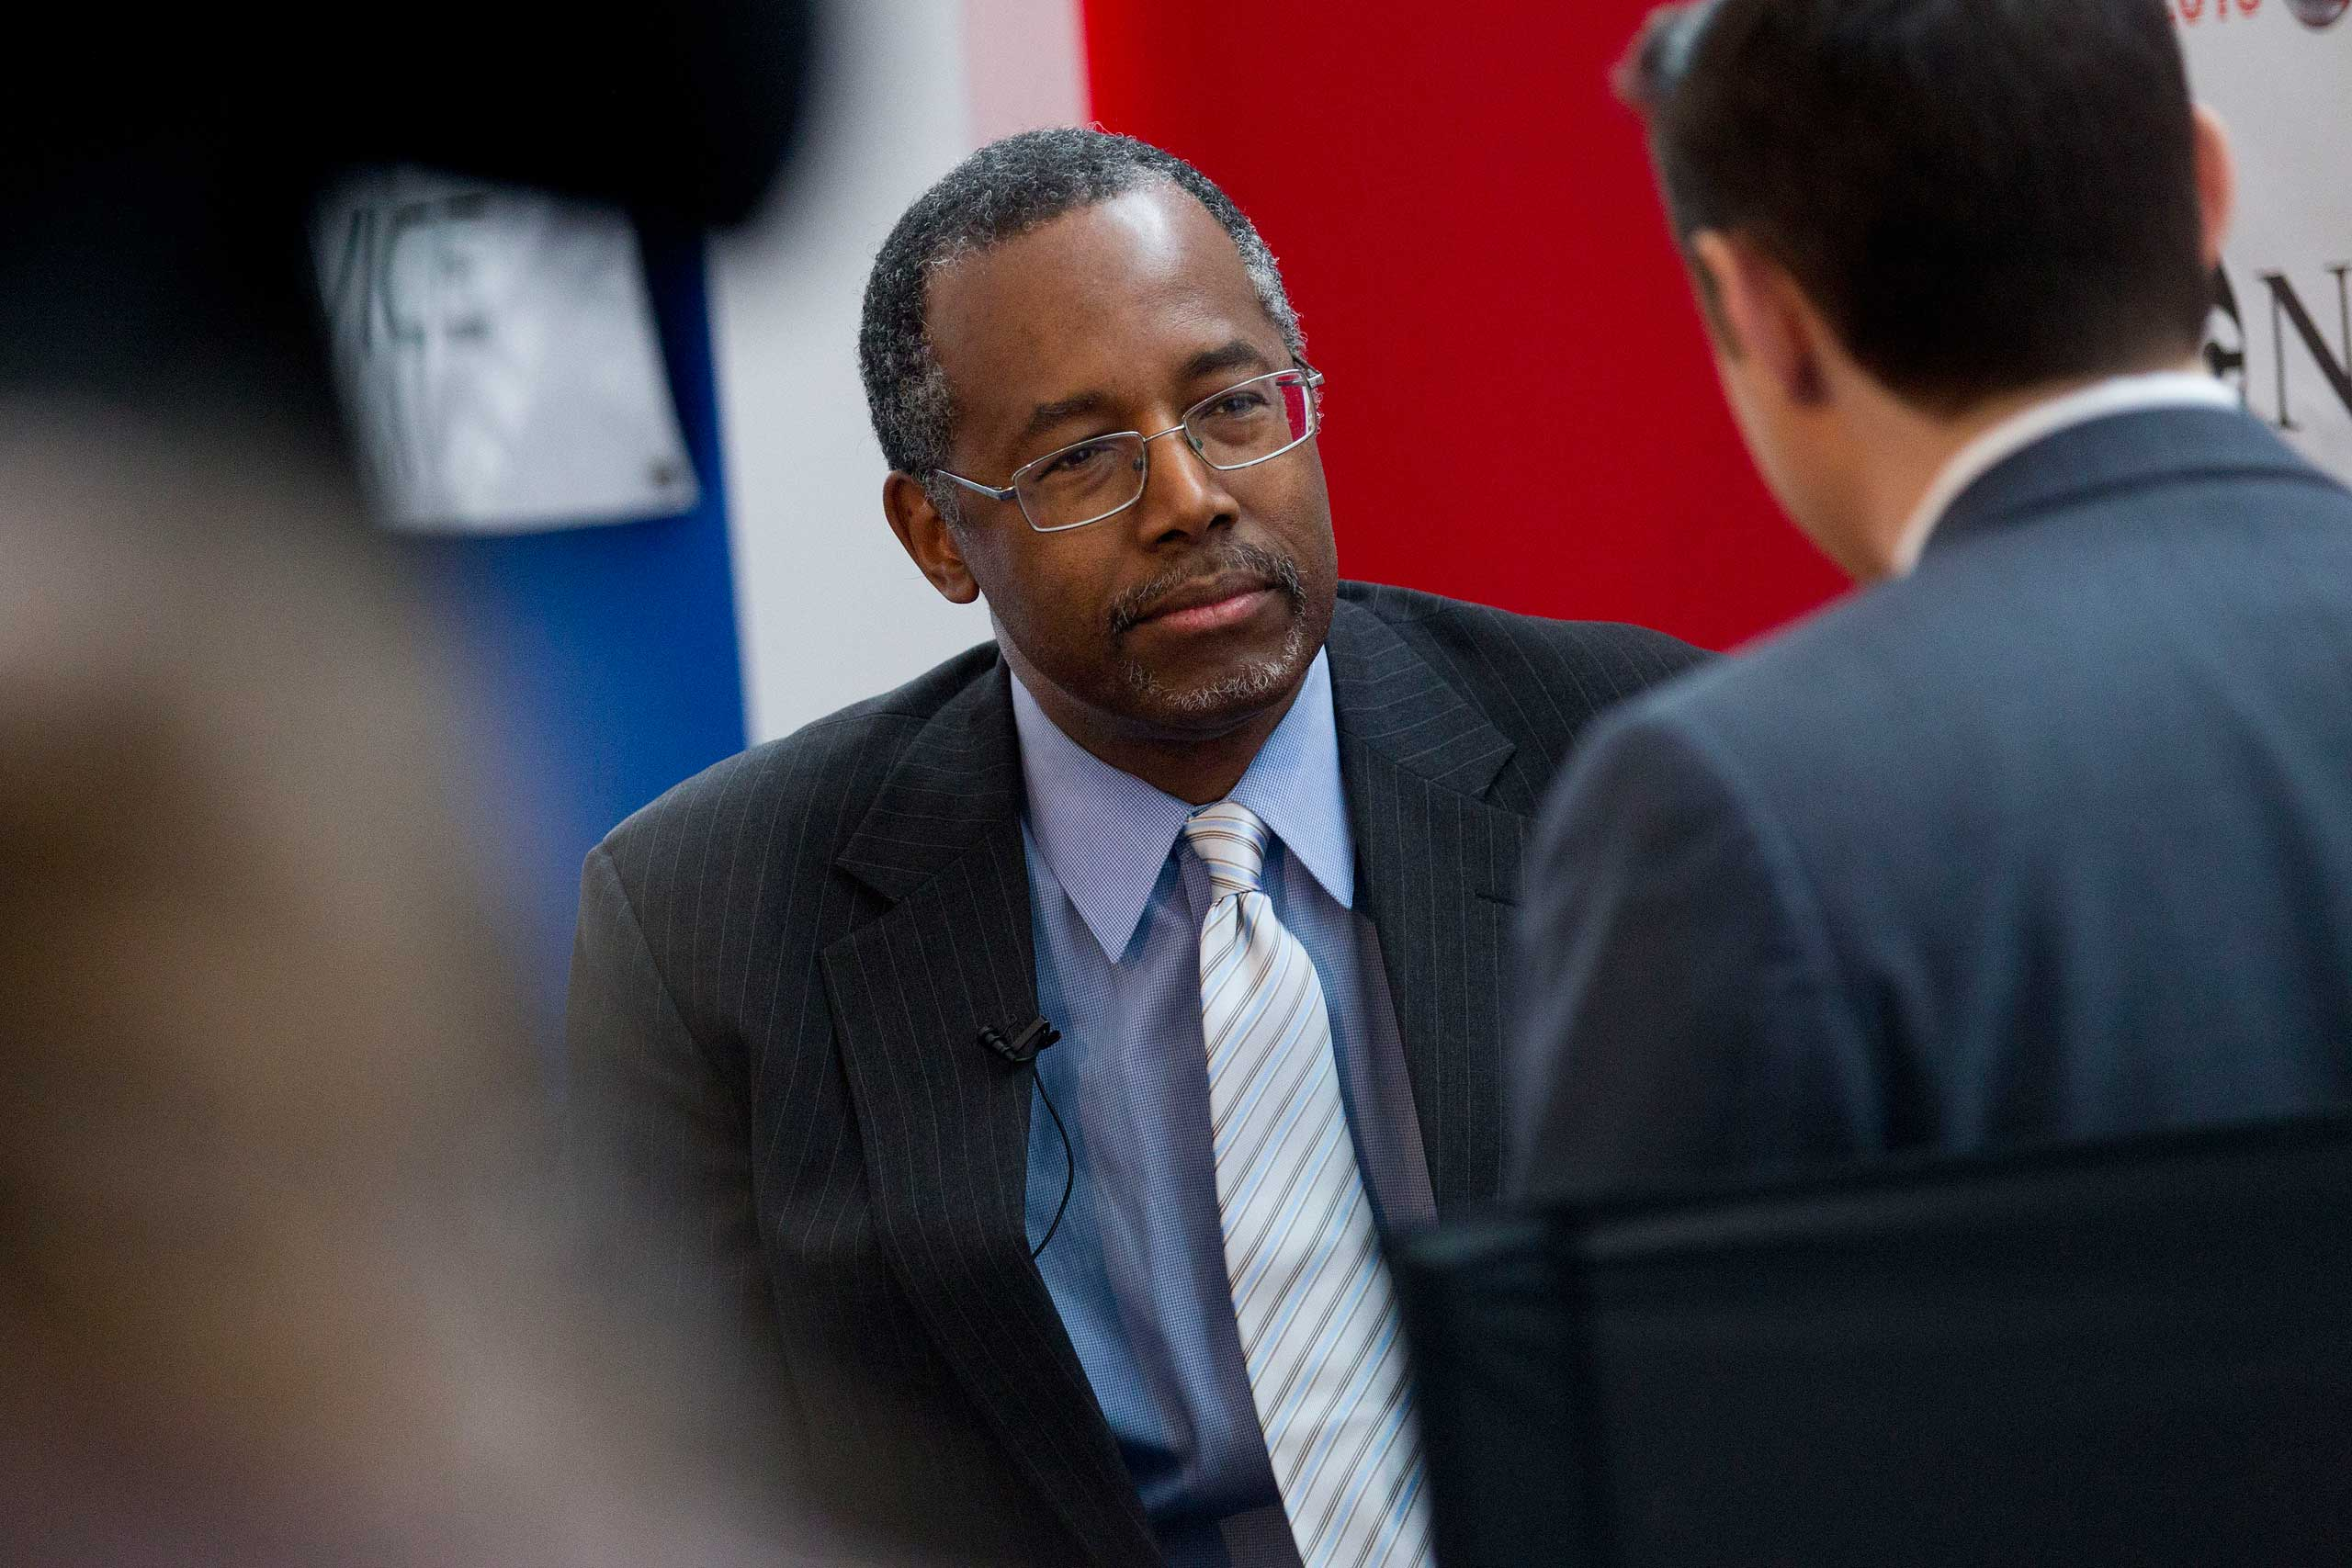 Ben Carson, possible 2016 presidential candidate, listens to a question during an interview during the Conservative Political Action Conference (CPAC) in National Harbor, Maryland, Feb. 26, 2015.